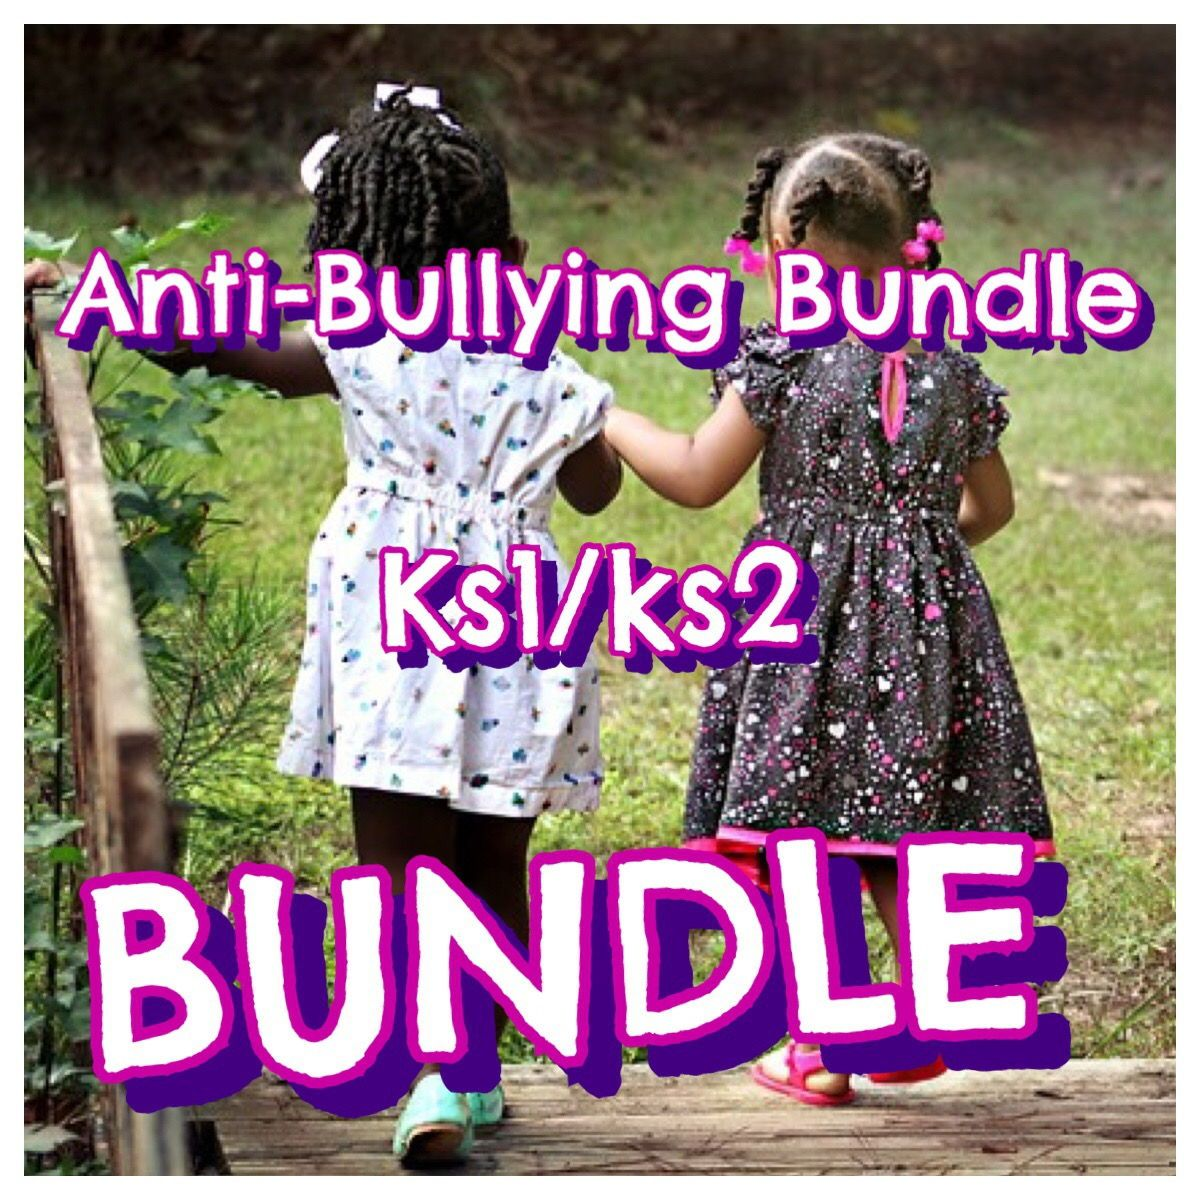 Anti Bullying Bundle For Ks1 Ks2